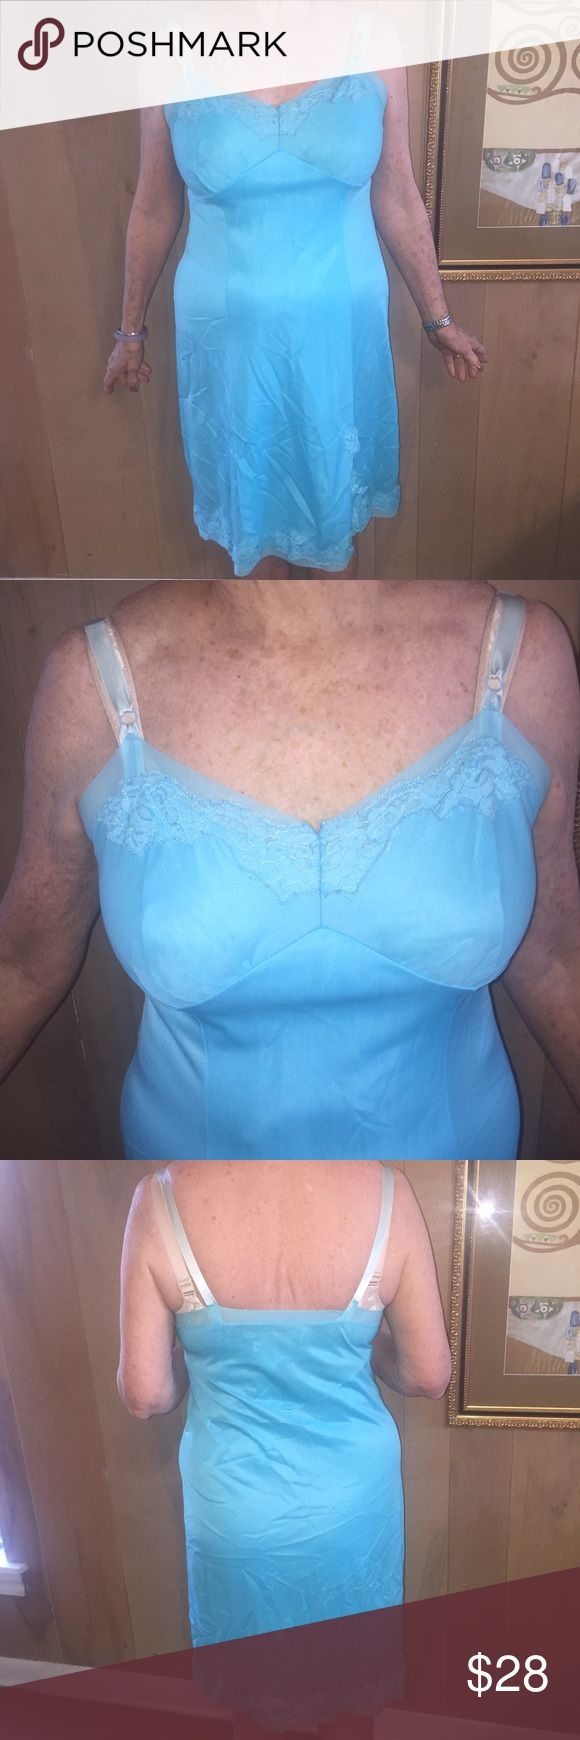 "👸🏼Vintage Texsheen Nylon Slip in Blue. Sz 38 👸🏼Vintage Texsheen Nylon Slip in Blue. Sz 38. 1970s. Excellent condition. Adjustable straps. Fits to size C cup. Model is a size 10 and 5'6"". Vintage Intimates & Sleepwear Chemises & Slips"